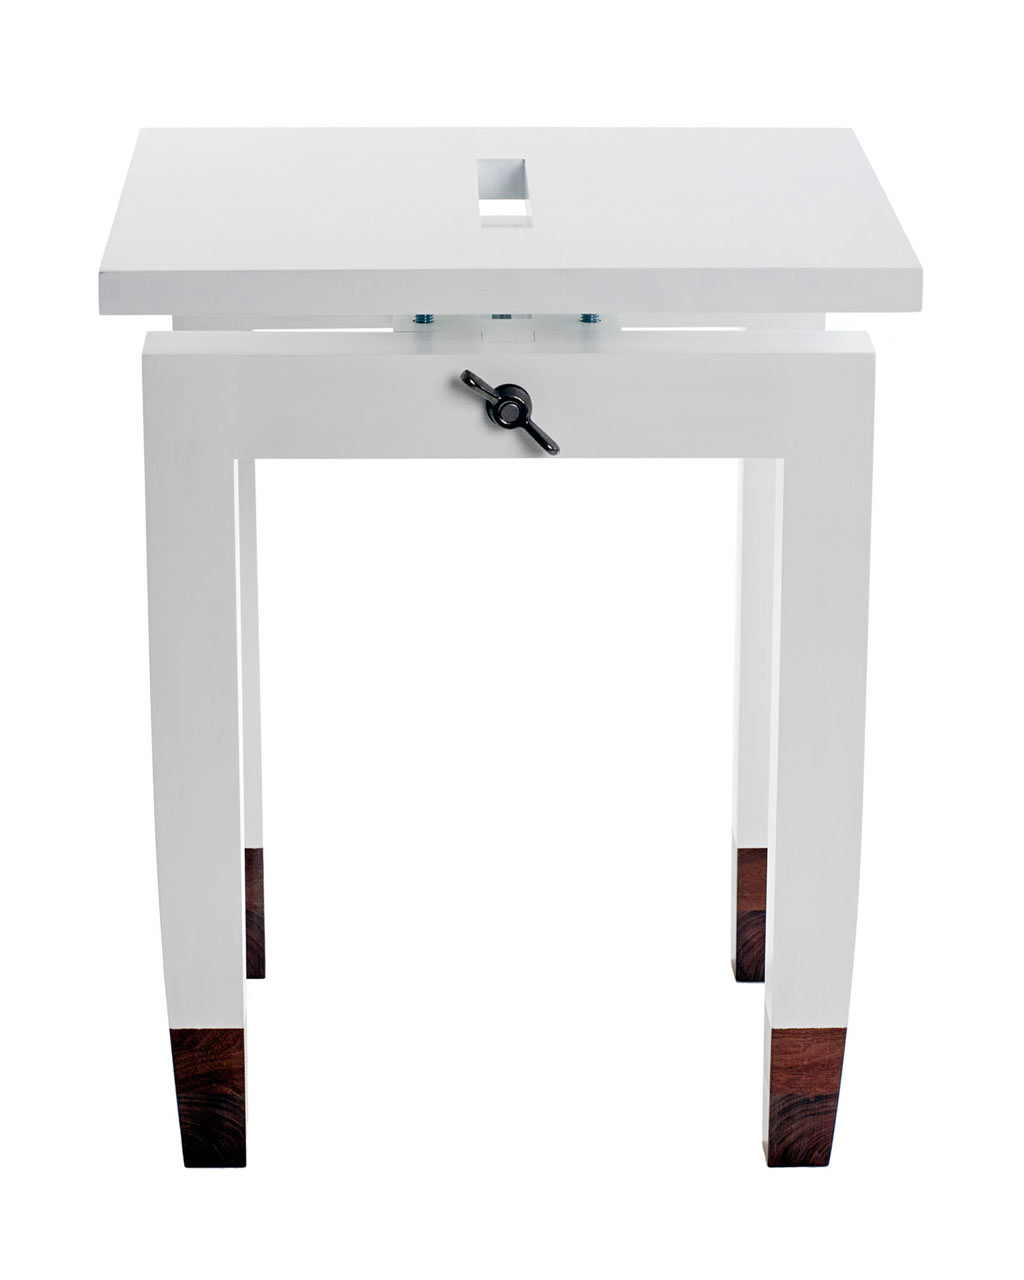 daniel-moyer-design-workshop-chic-table-white